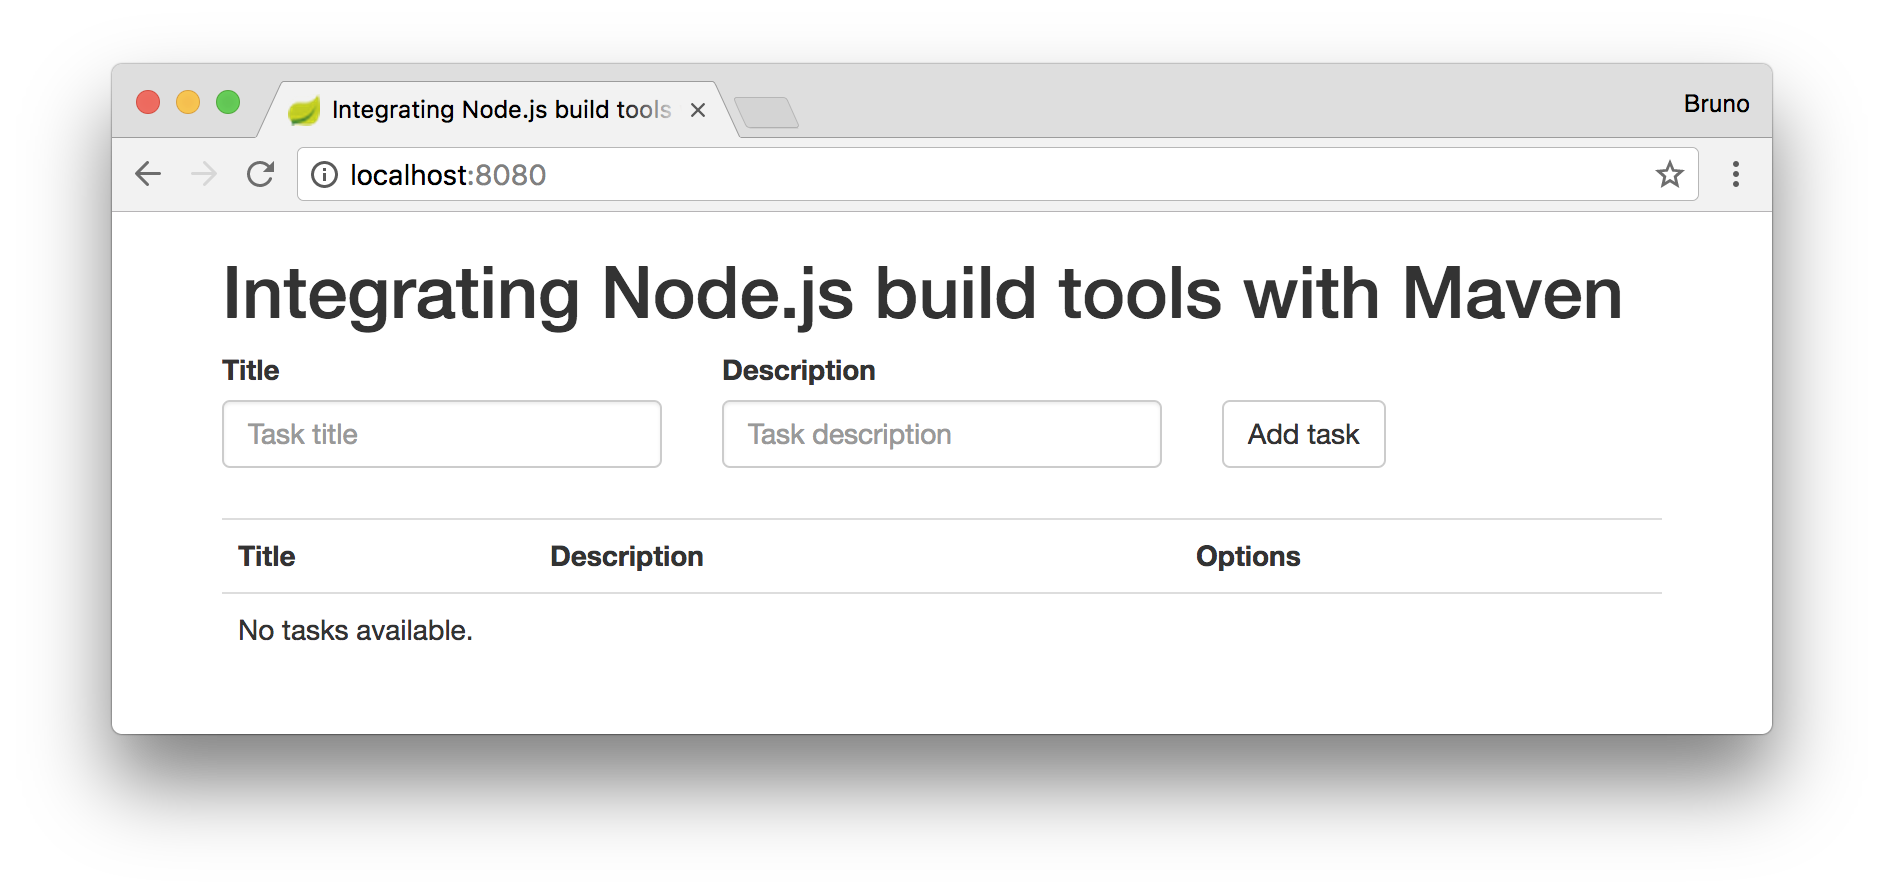 Integrating Node.js Build Tools with Maven